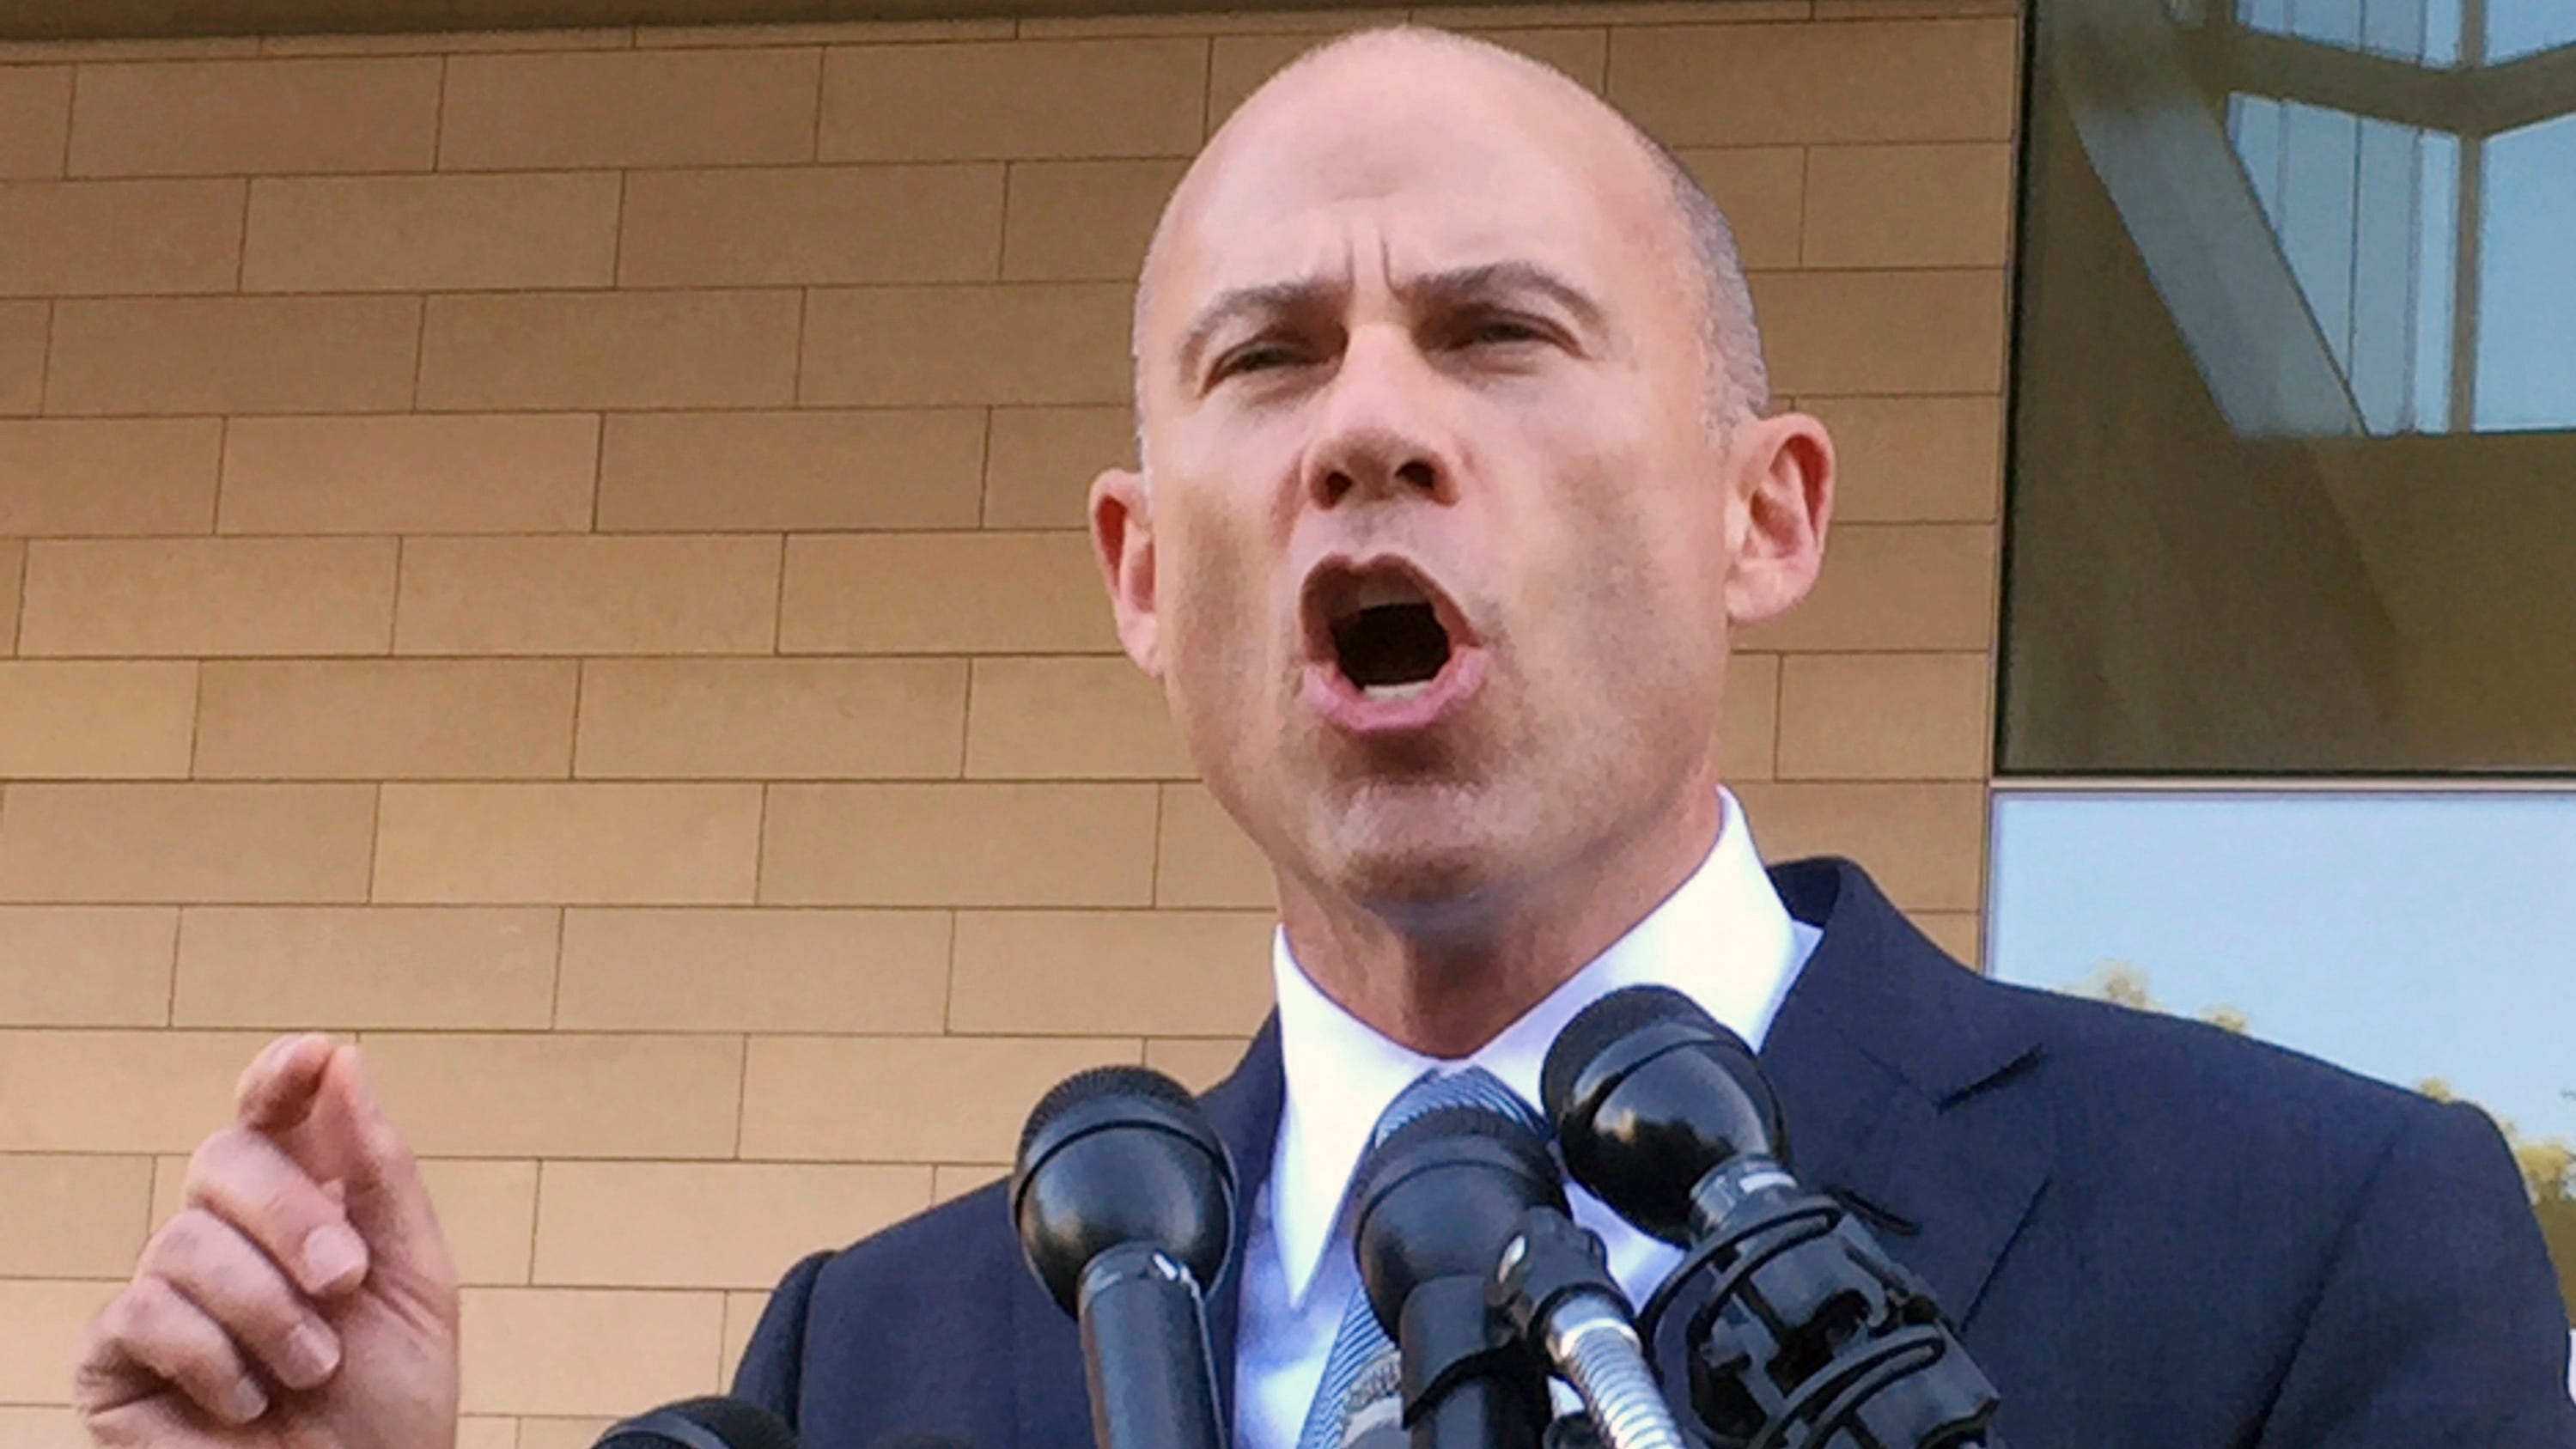 Michael Avenatti, attorney for porn actress Stormy Daniels, talks to reporters after a federal court hearing in Los Angeles, Sept. 24, 2018.